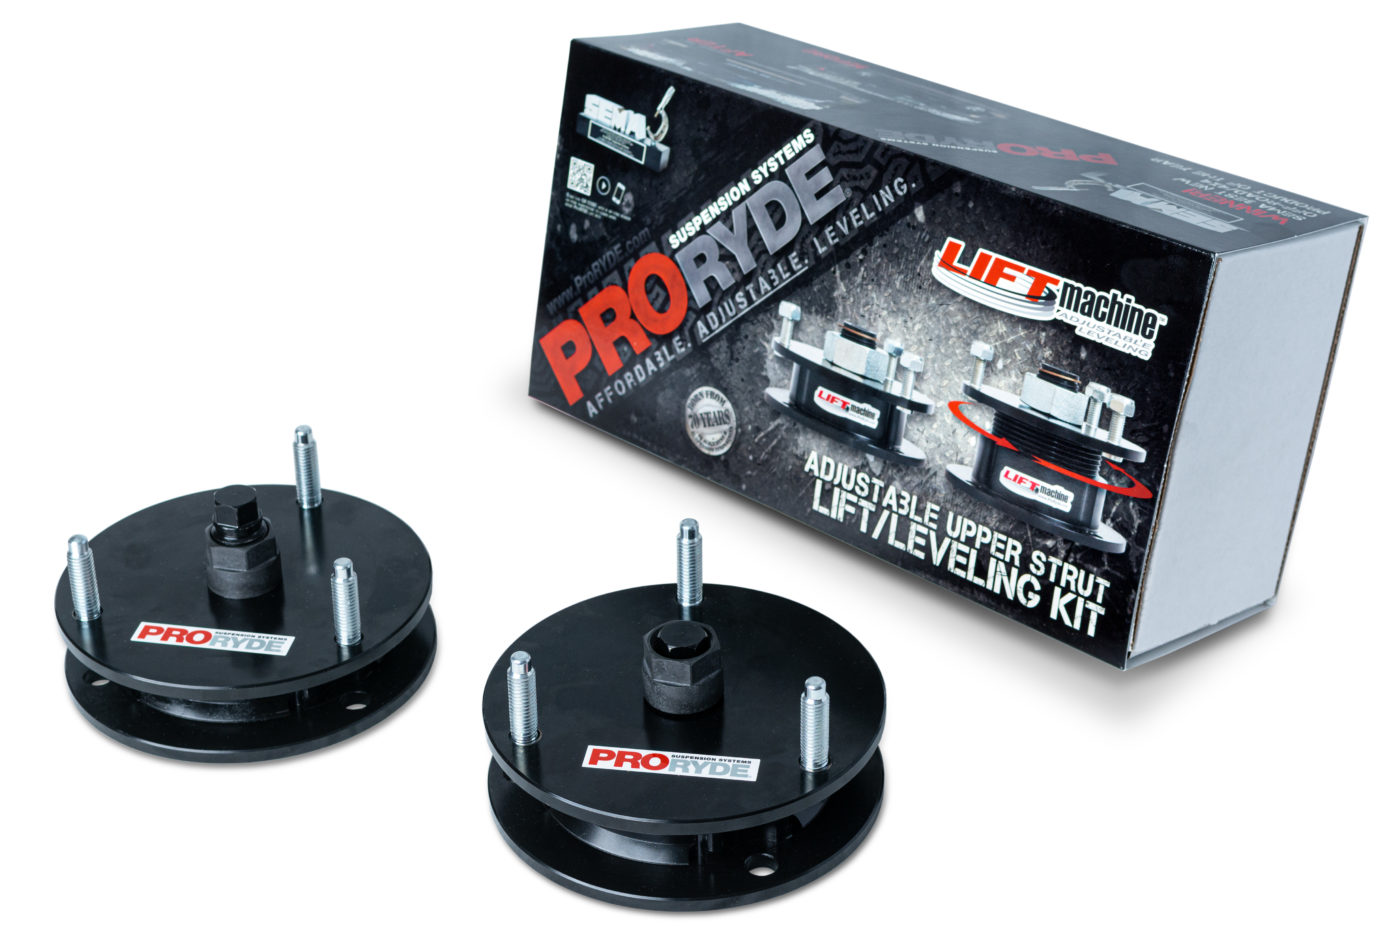 SILVERADO SIERRA 1500 (T1XX) ADJUSTABLE FRONT LIFT LEVELING KIT